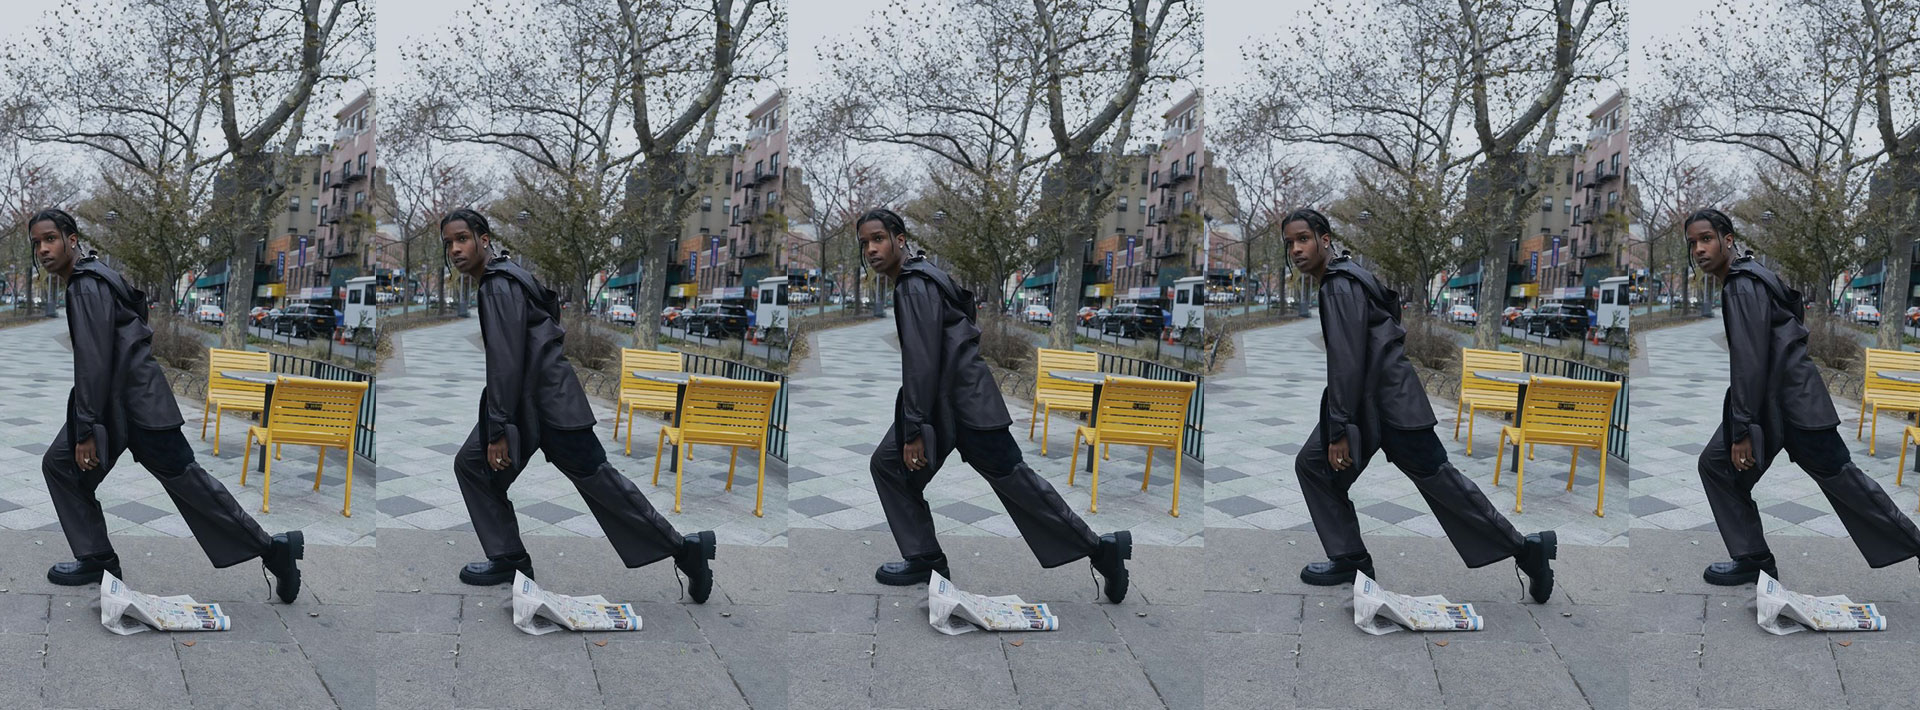 Can we all Praise The Lord for A$AP Rockin' these leather looks? then take some more @ METCHA.COM